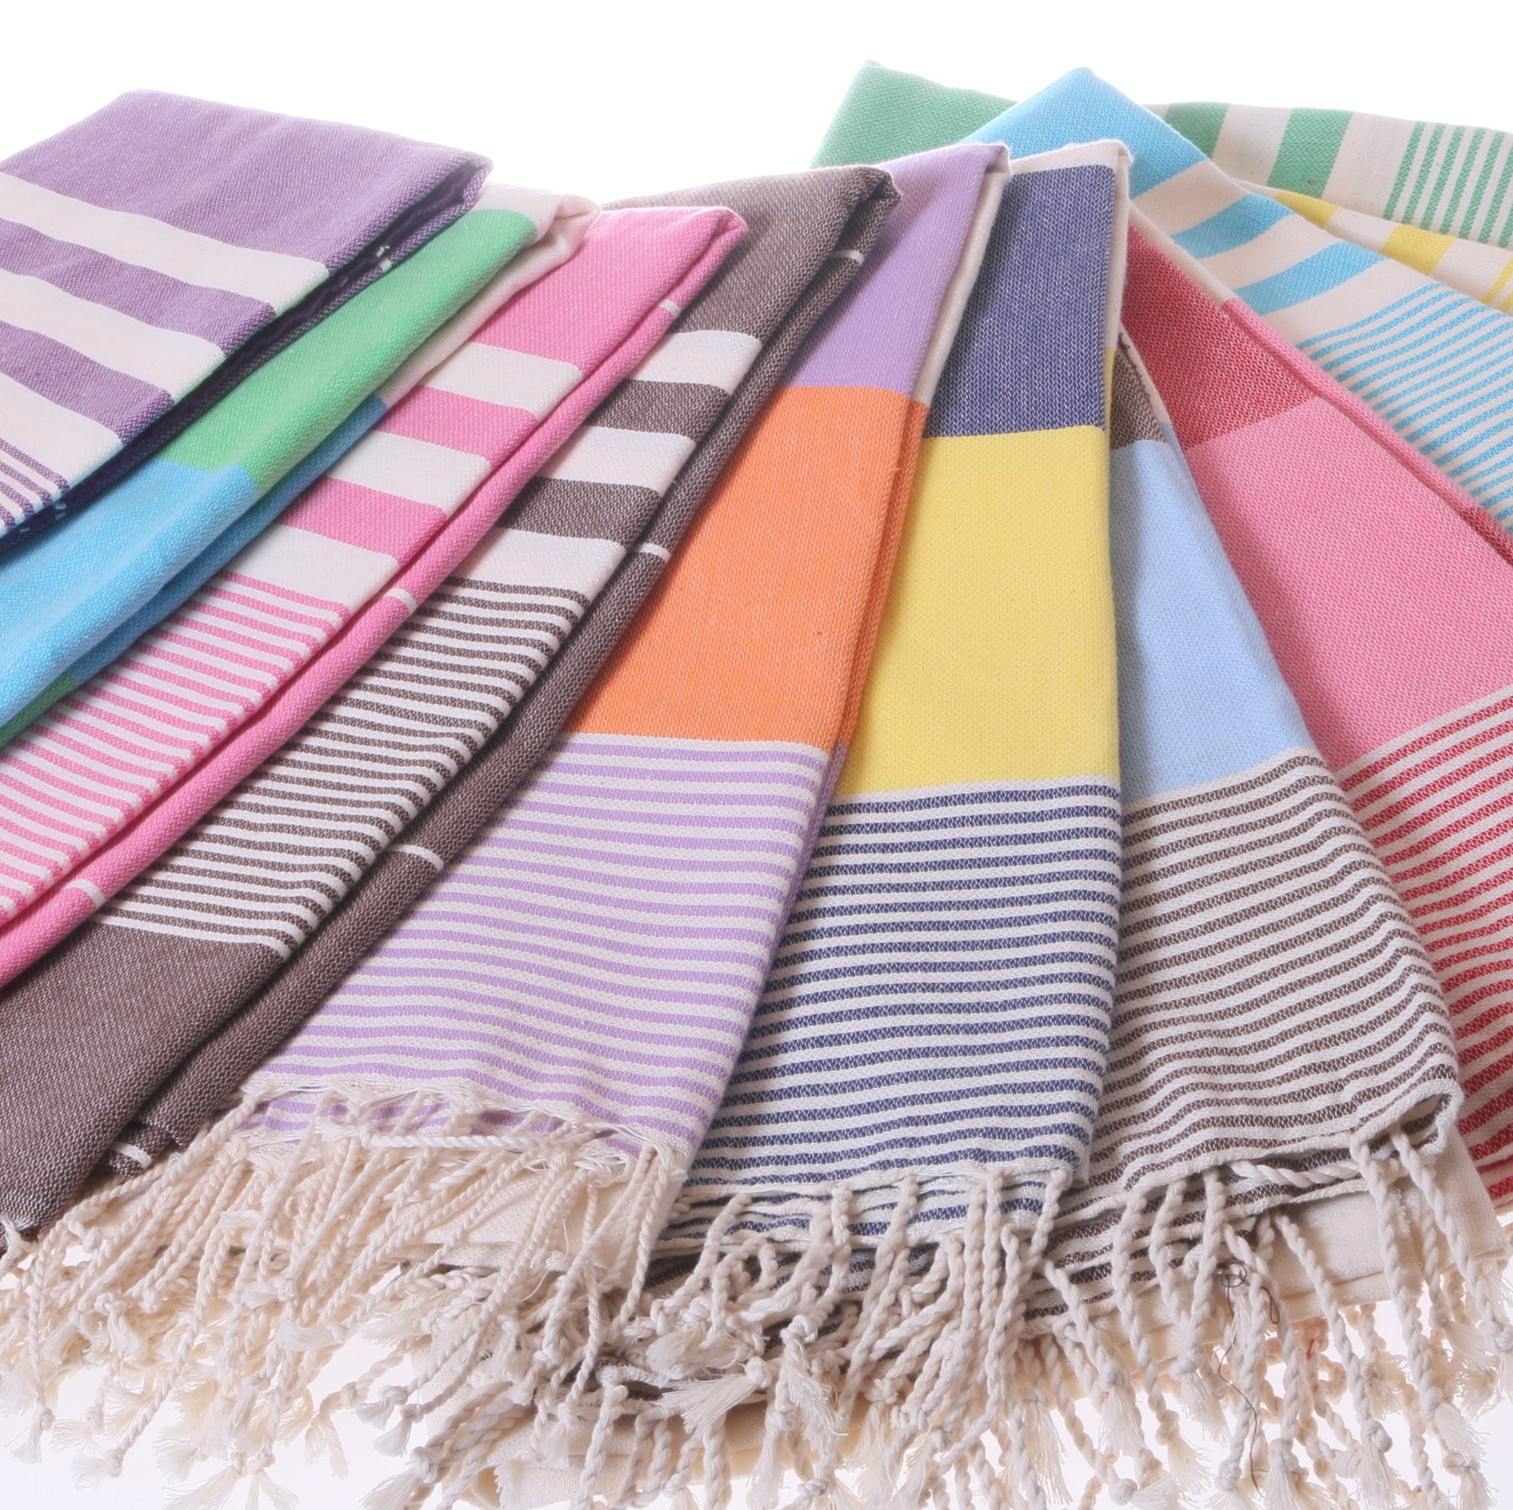 Colourful Cotton Beach Towels And